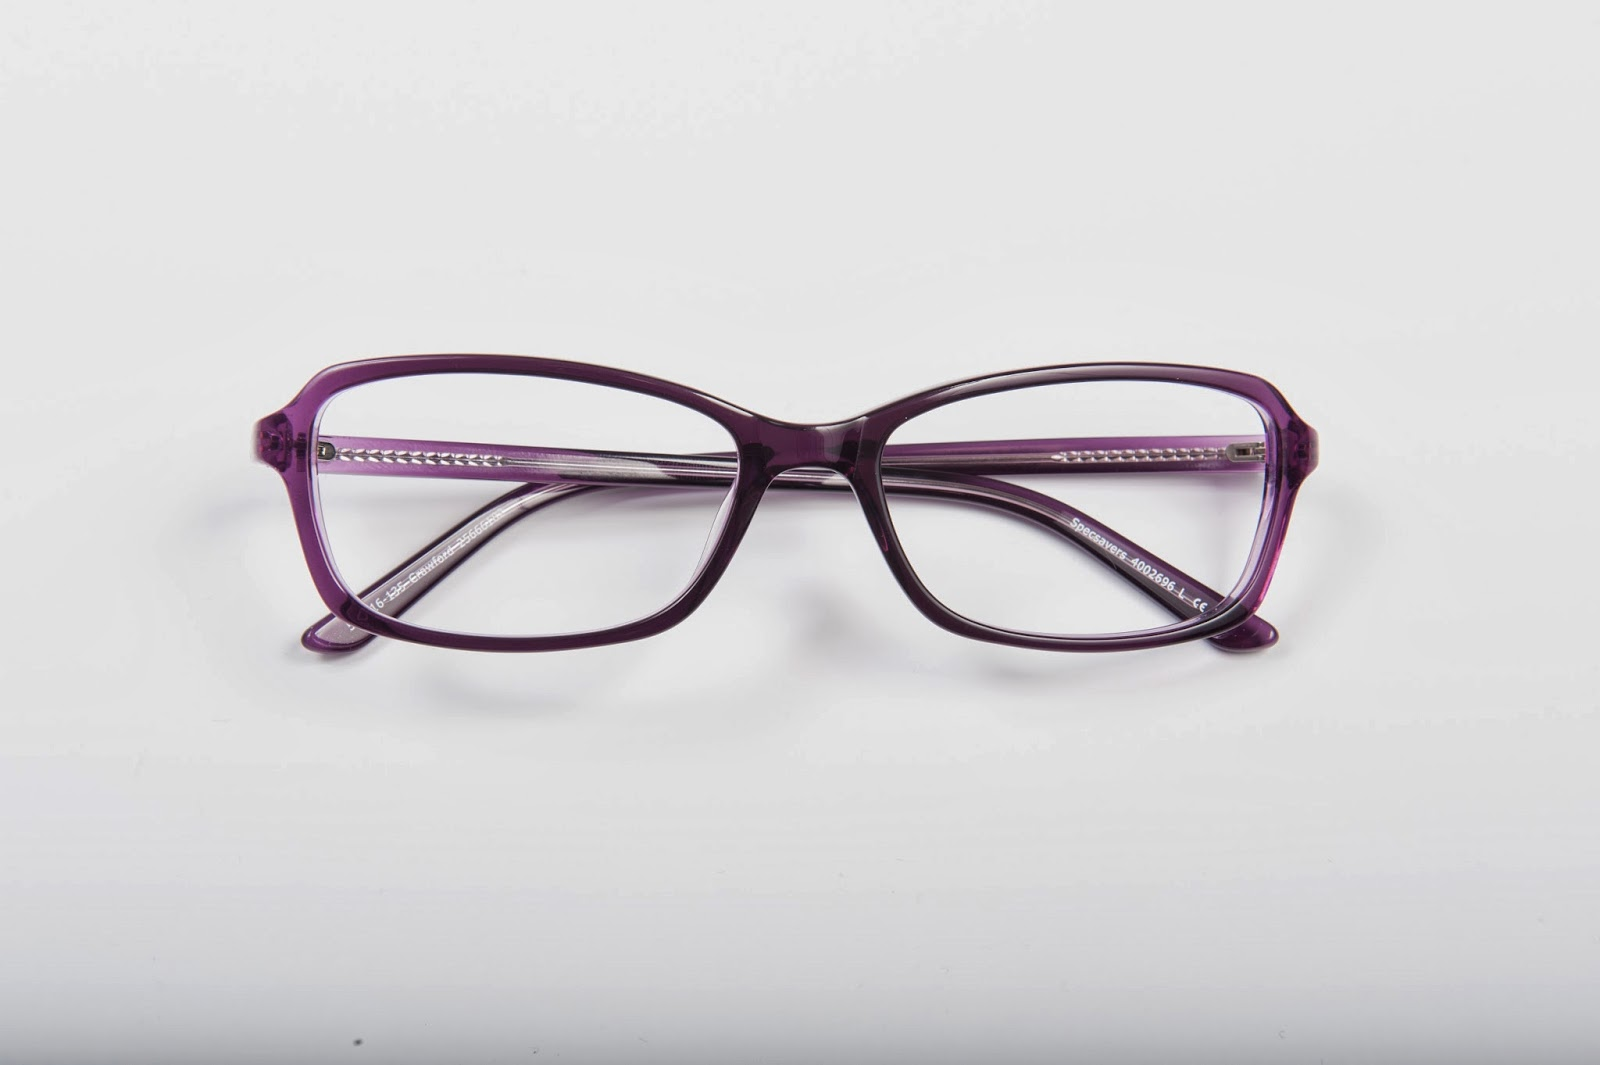 Broken Glasses Frame Specsavers : Fashion Notes by Cris: Specsavers Spring Summer Eyewear